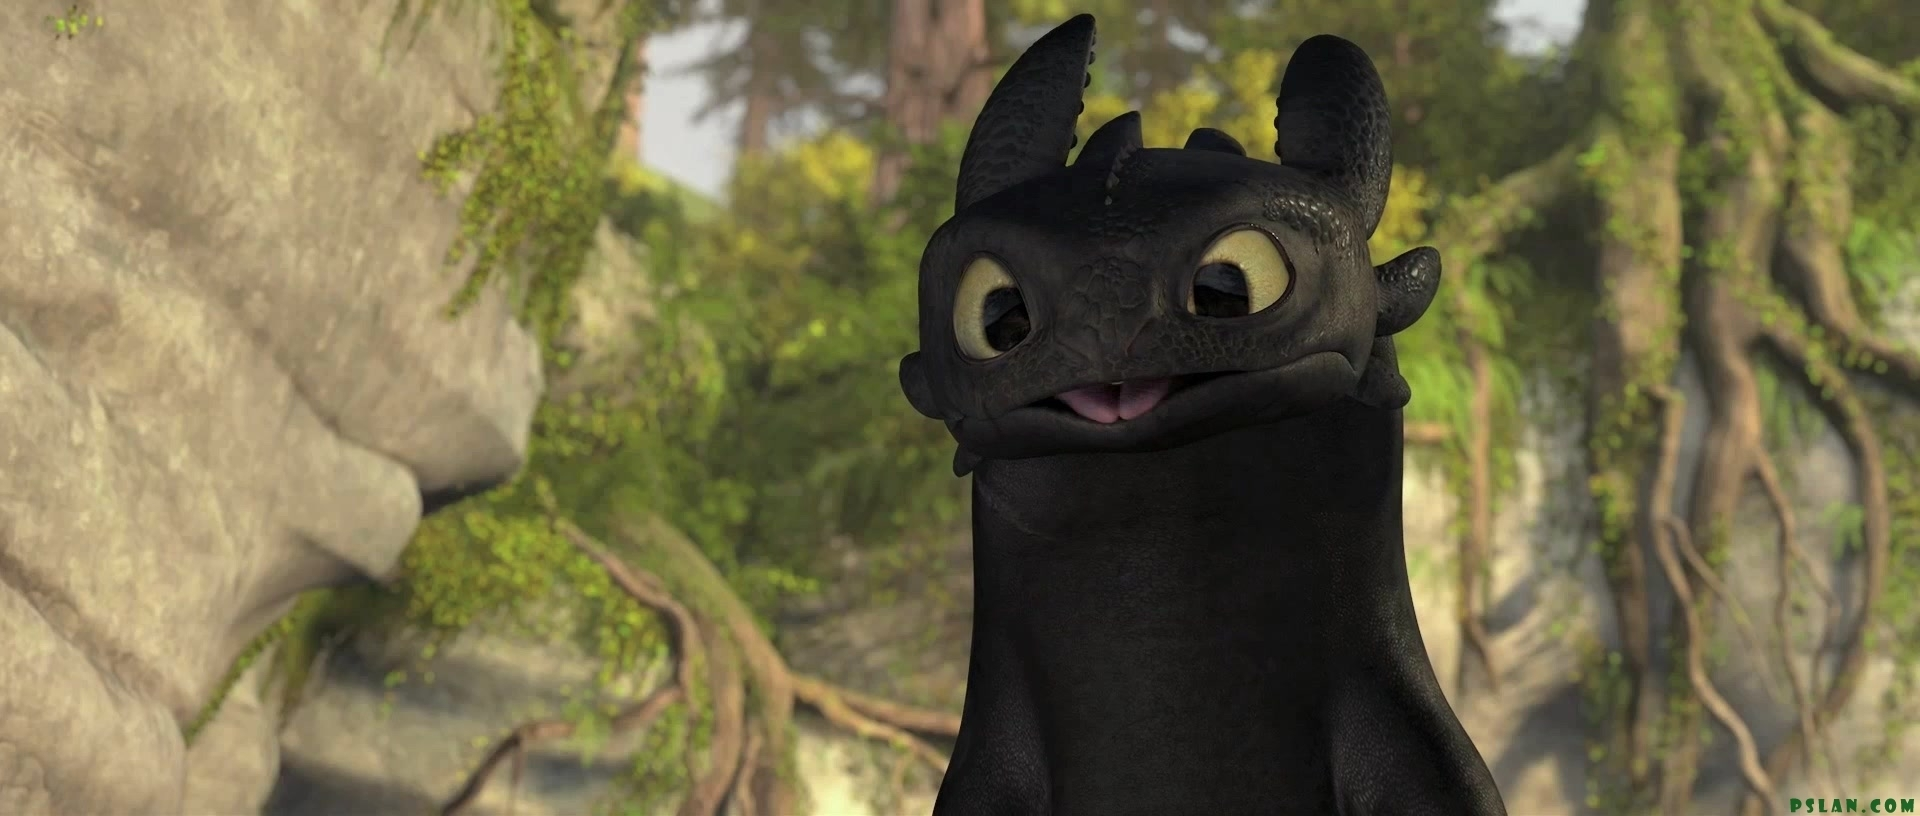 toothless from how to train your dragon jenine silos